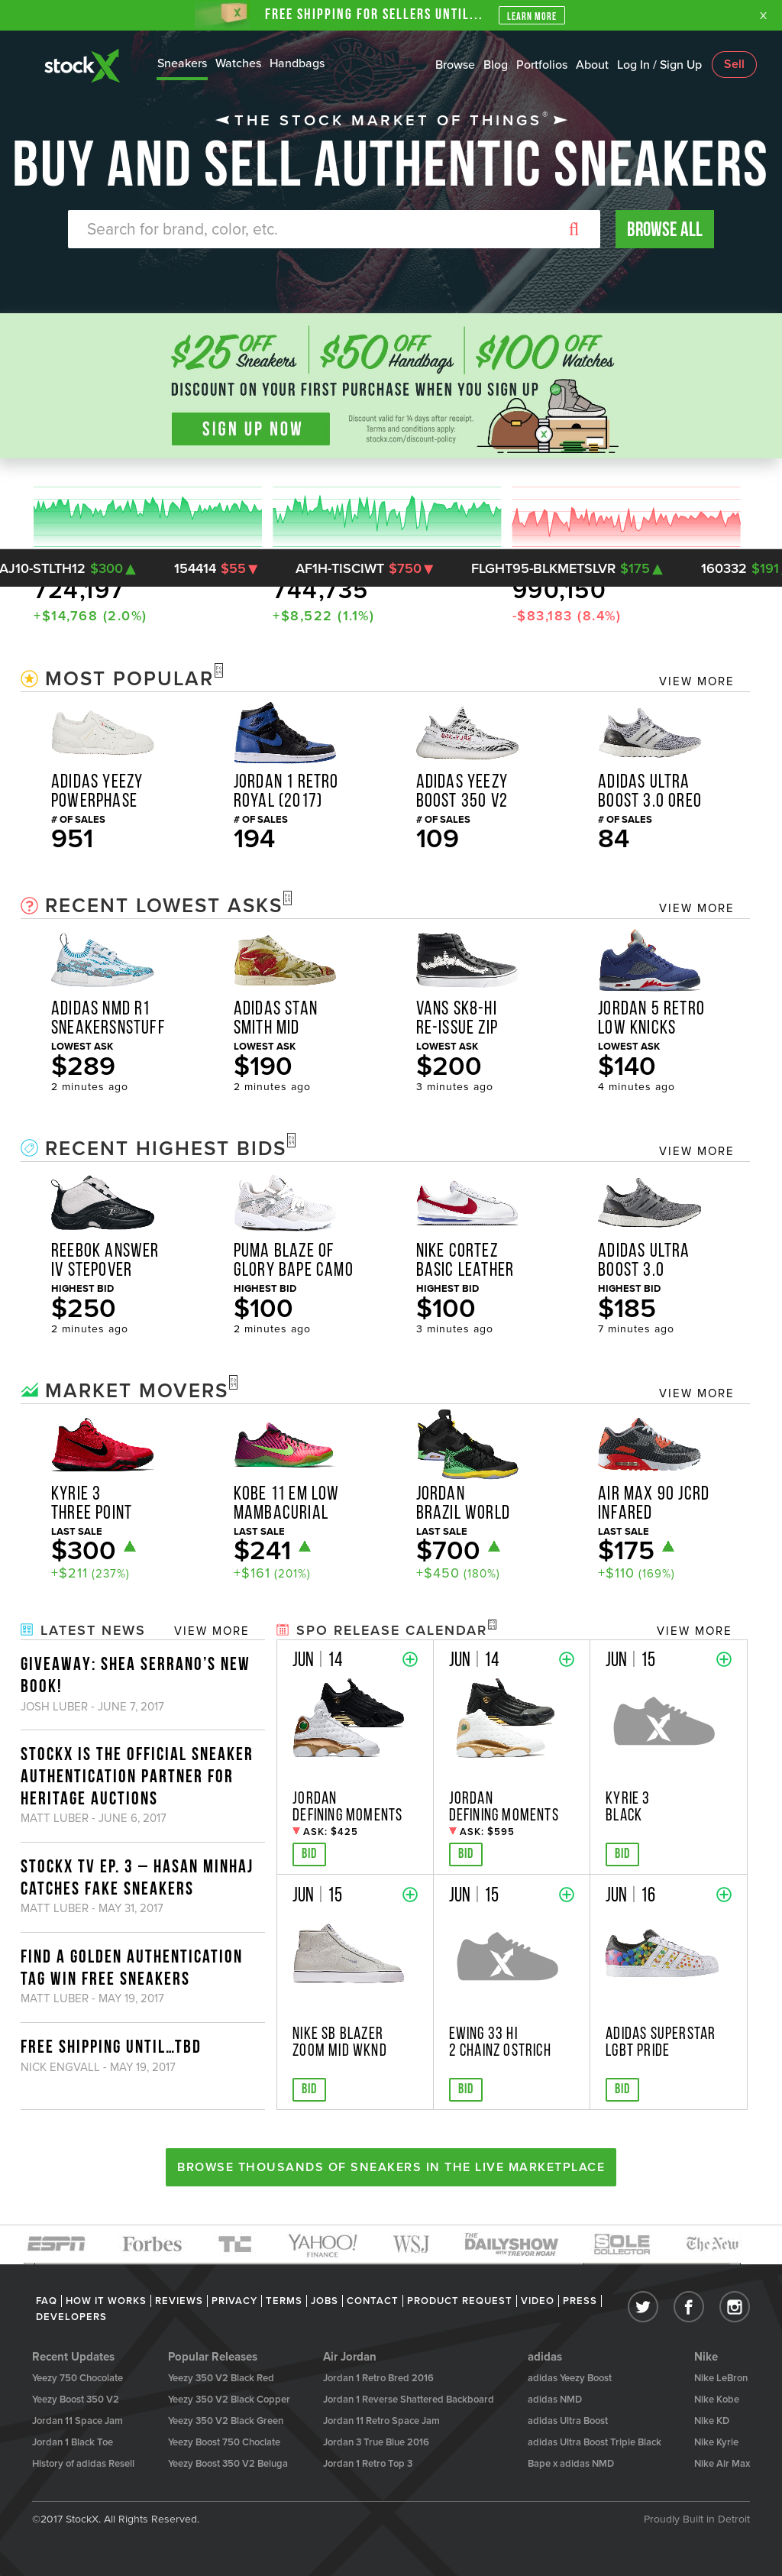 StockX Competitors, Revenue and Employees - Owler Company